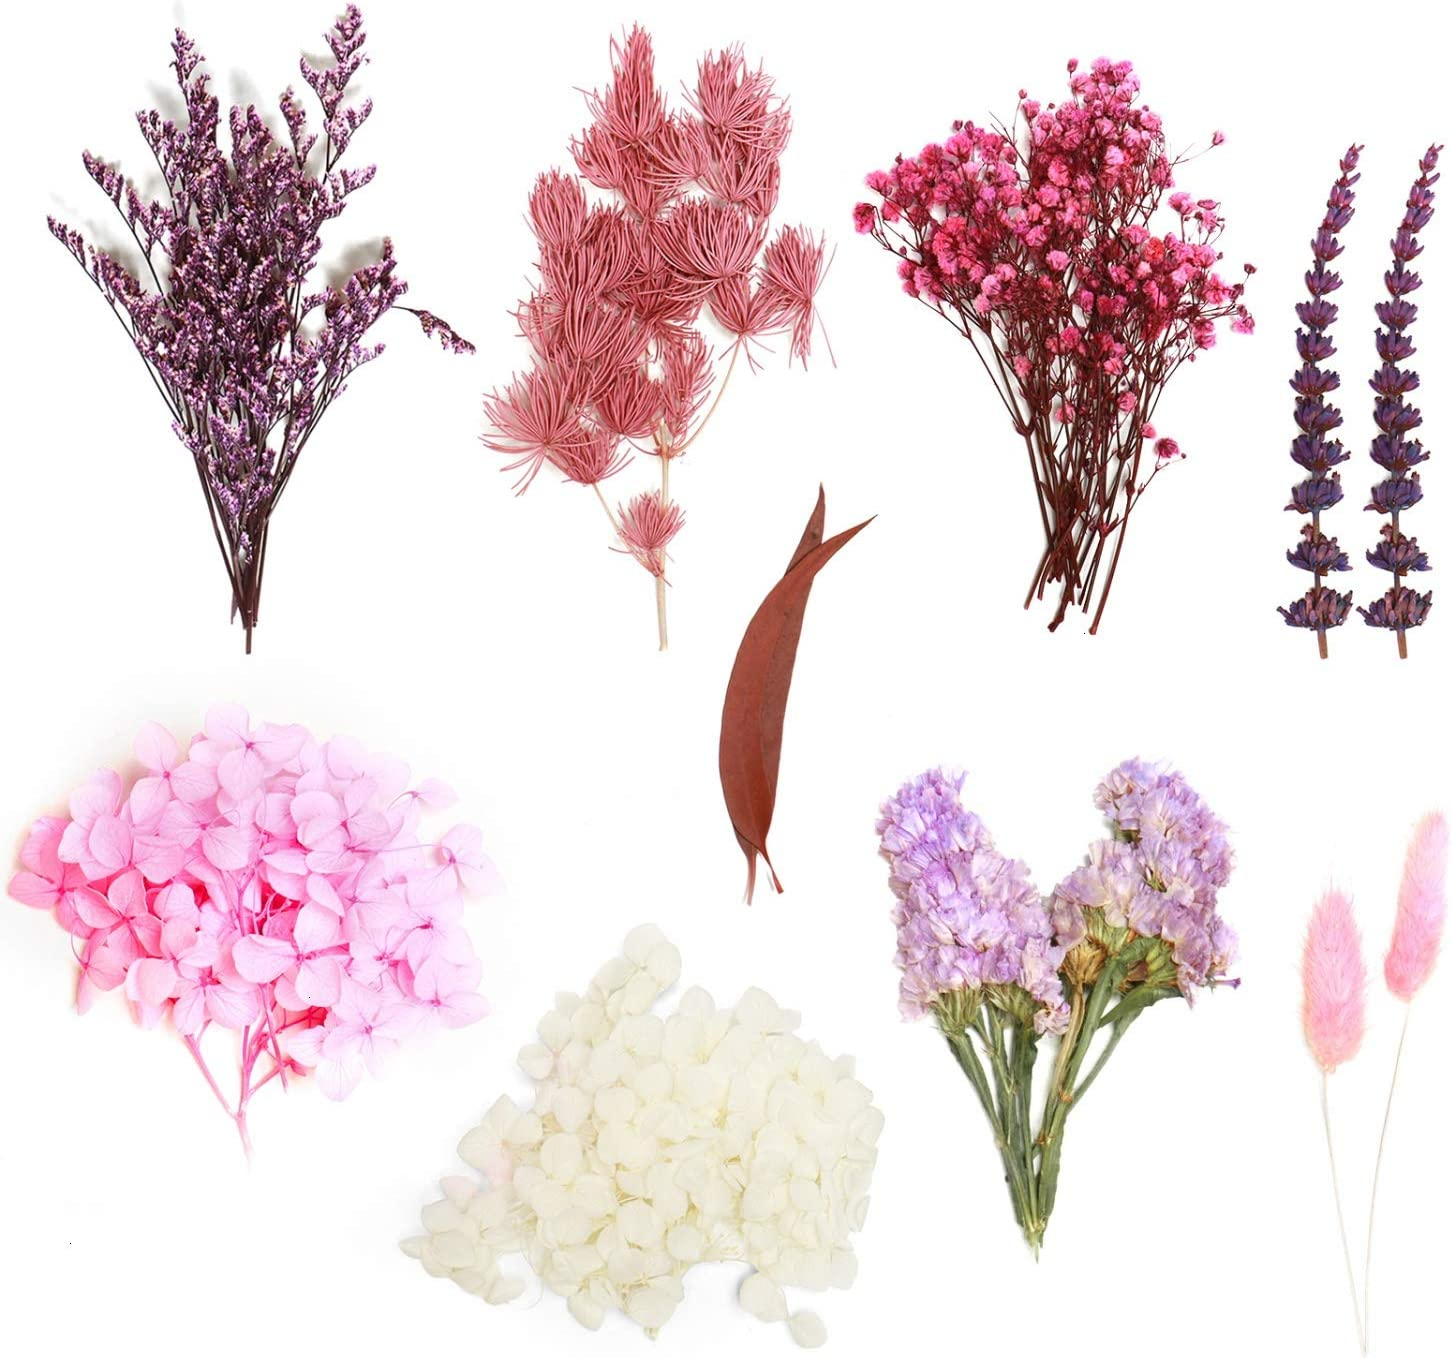 Resin Jewelry Crafts and DIY Candle Blue Natural Dried Flower for Scrapbooking Nolliere 35 Pcs Real Dried Pressed Flowers for Resin